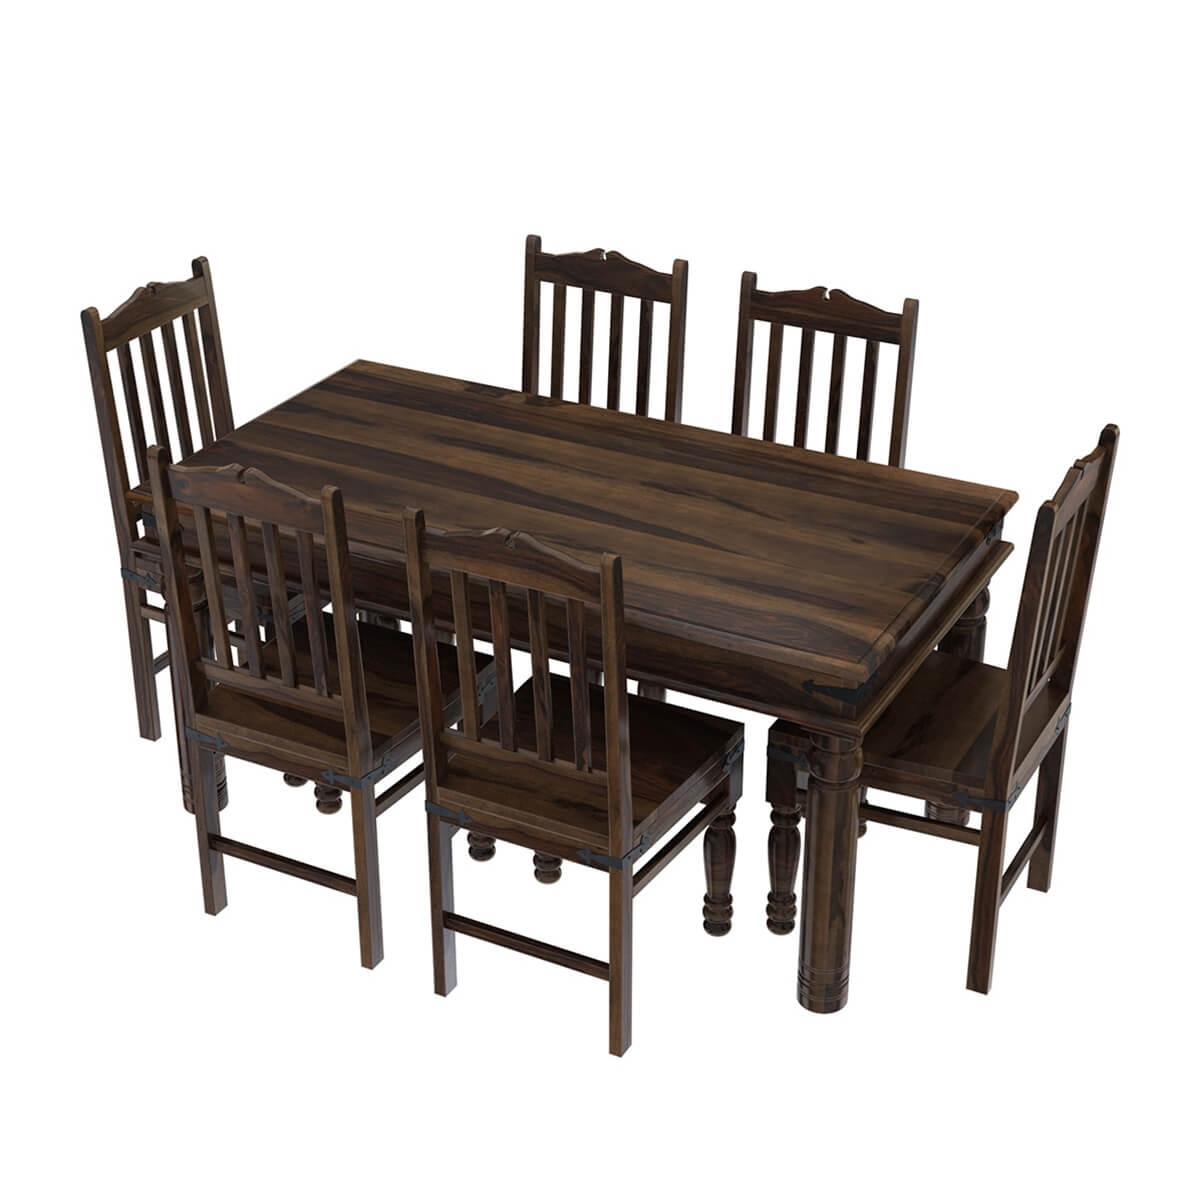 oklahoma farmhouse traditional 5pc solid wood country dining table set. Black Bedroom Furniture Sets. Home Design Ideas